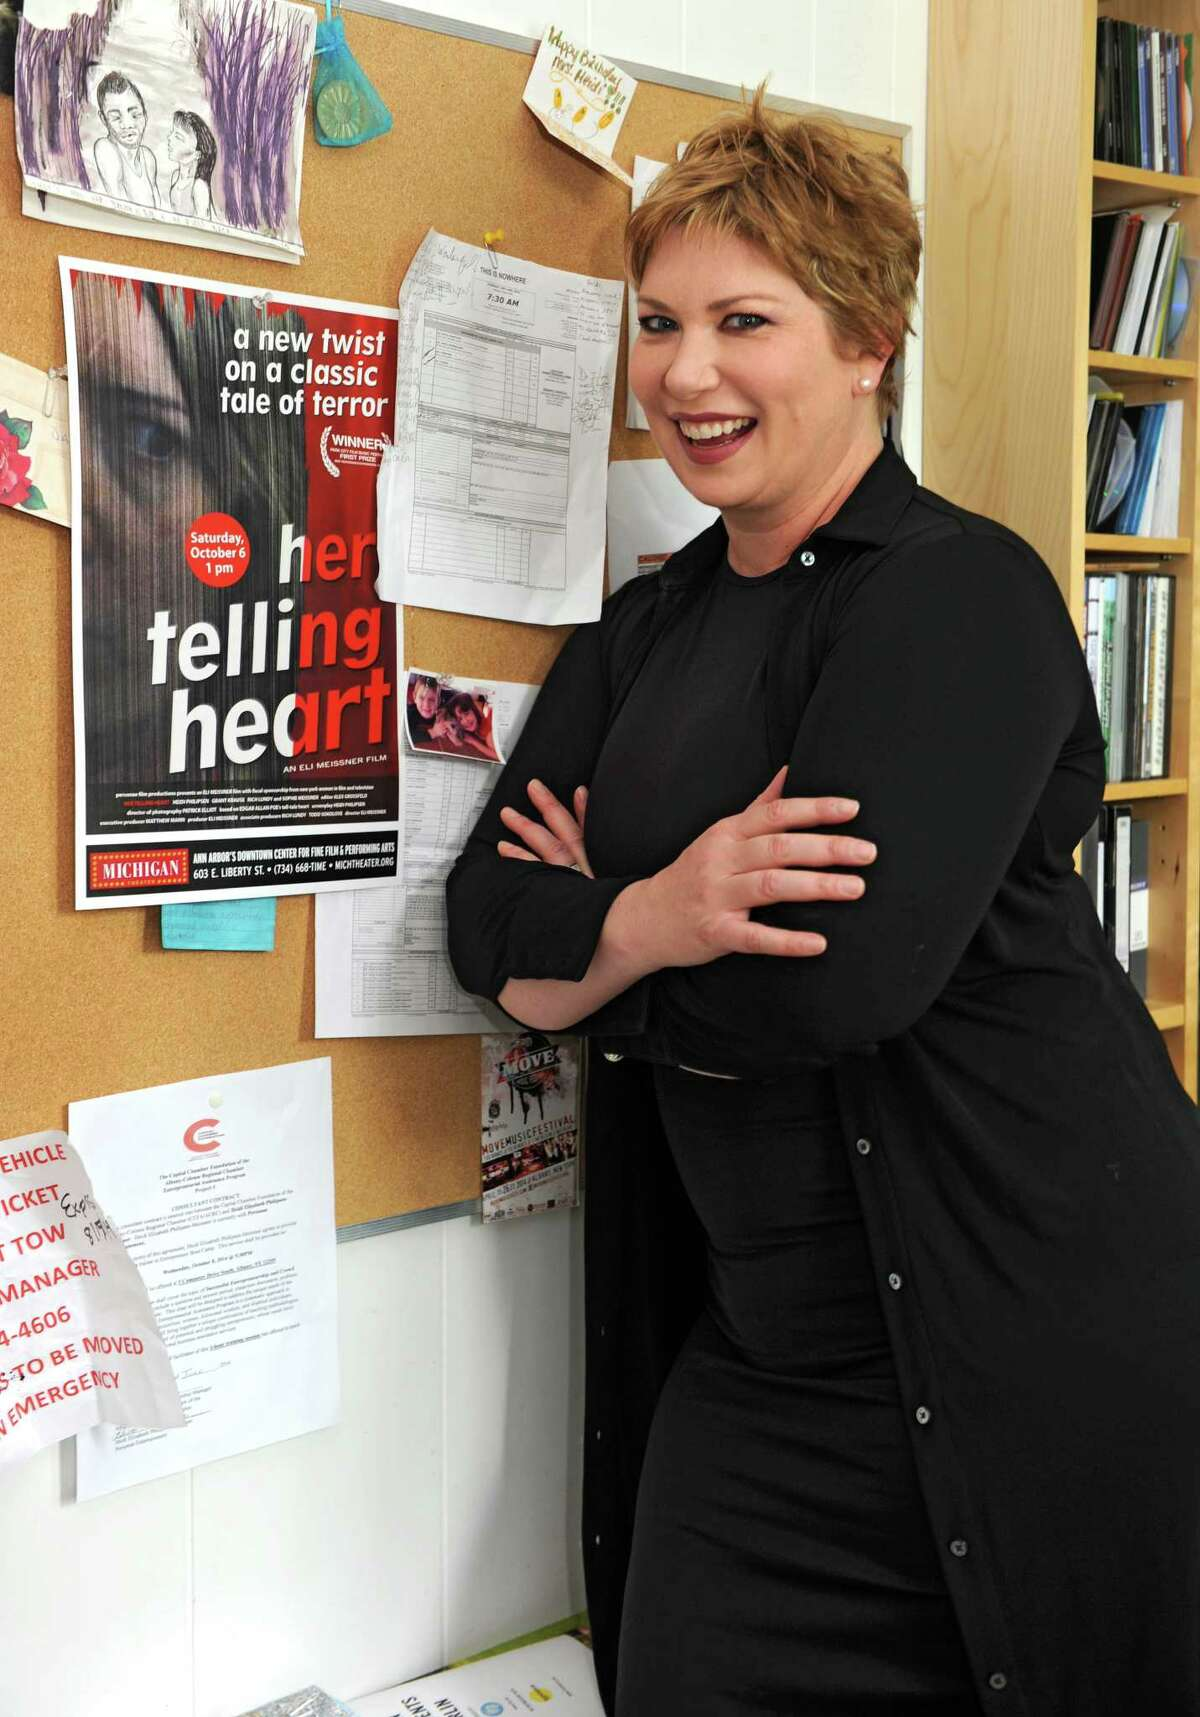 Heidi Philipsen stands next to a poster of the movie